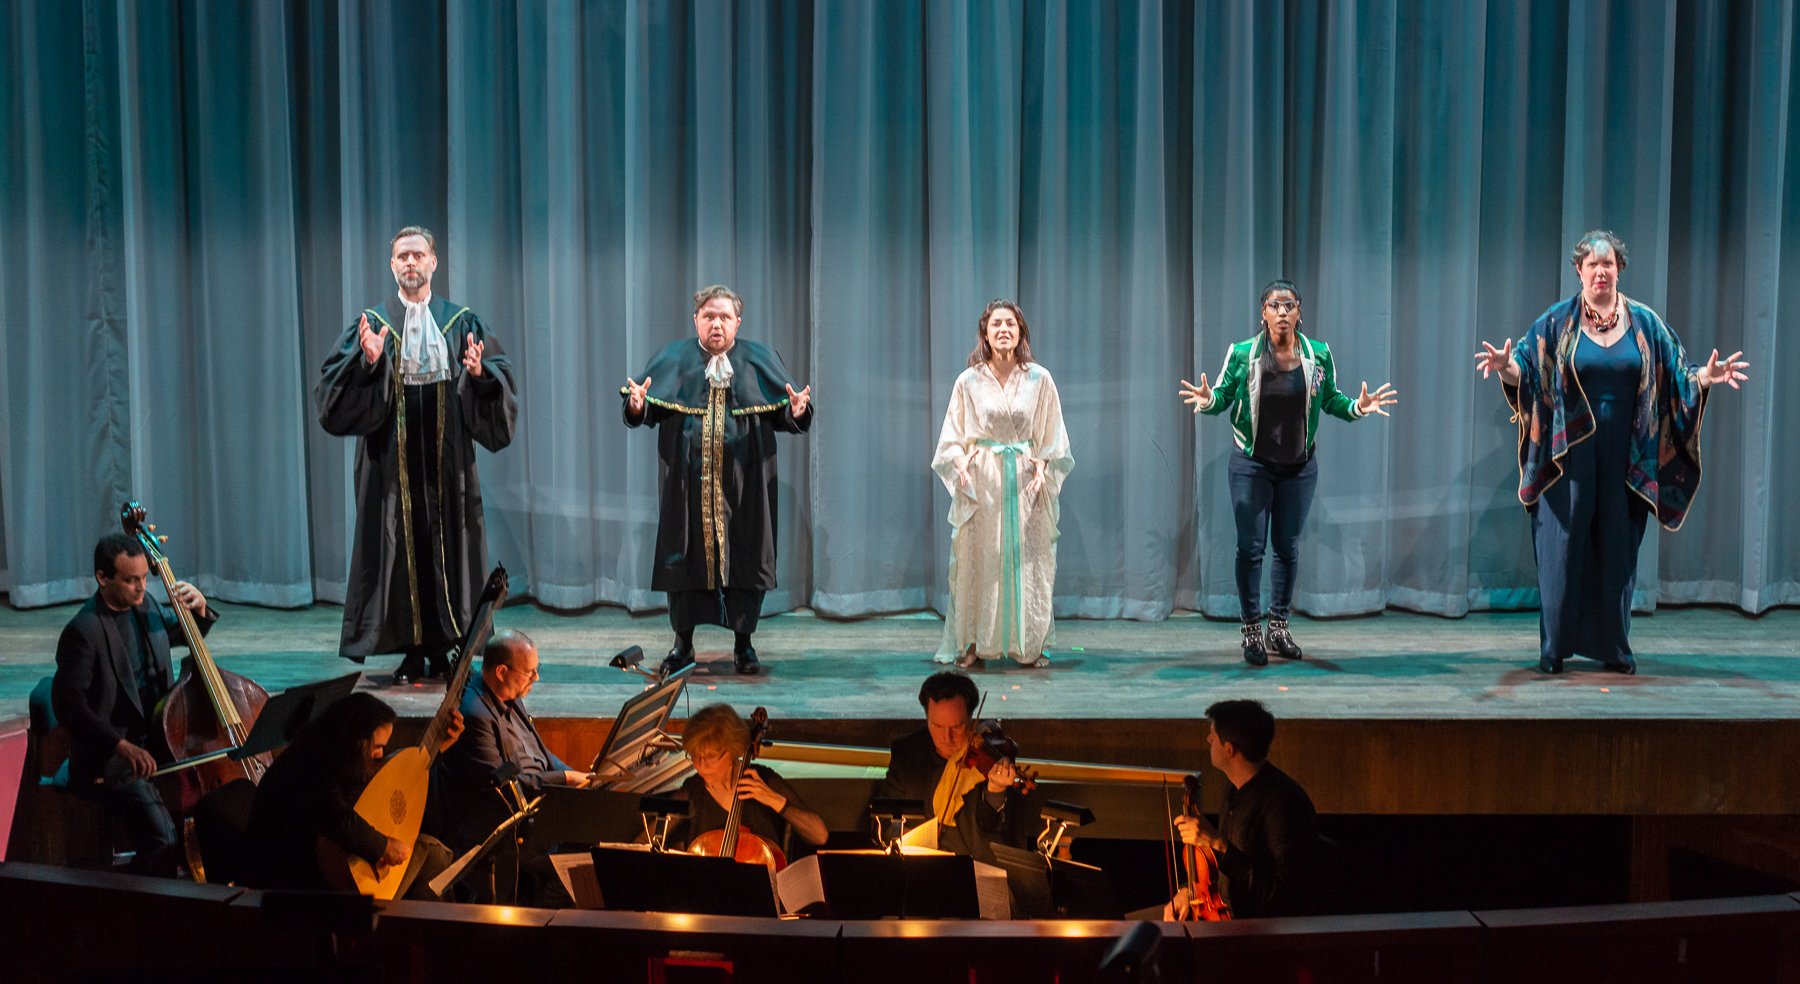 La Susanna 's cast and musician ensemble. Photo by Louis Forget; courtesy of Opera Lafayette.